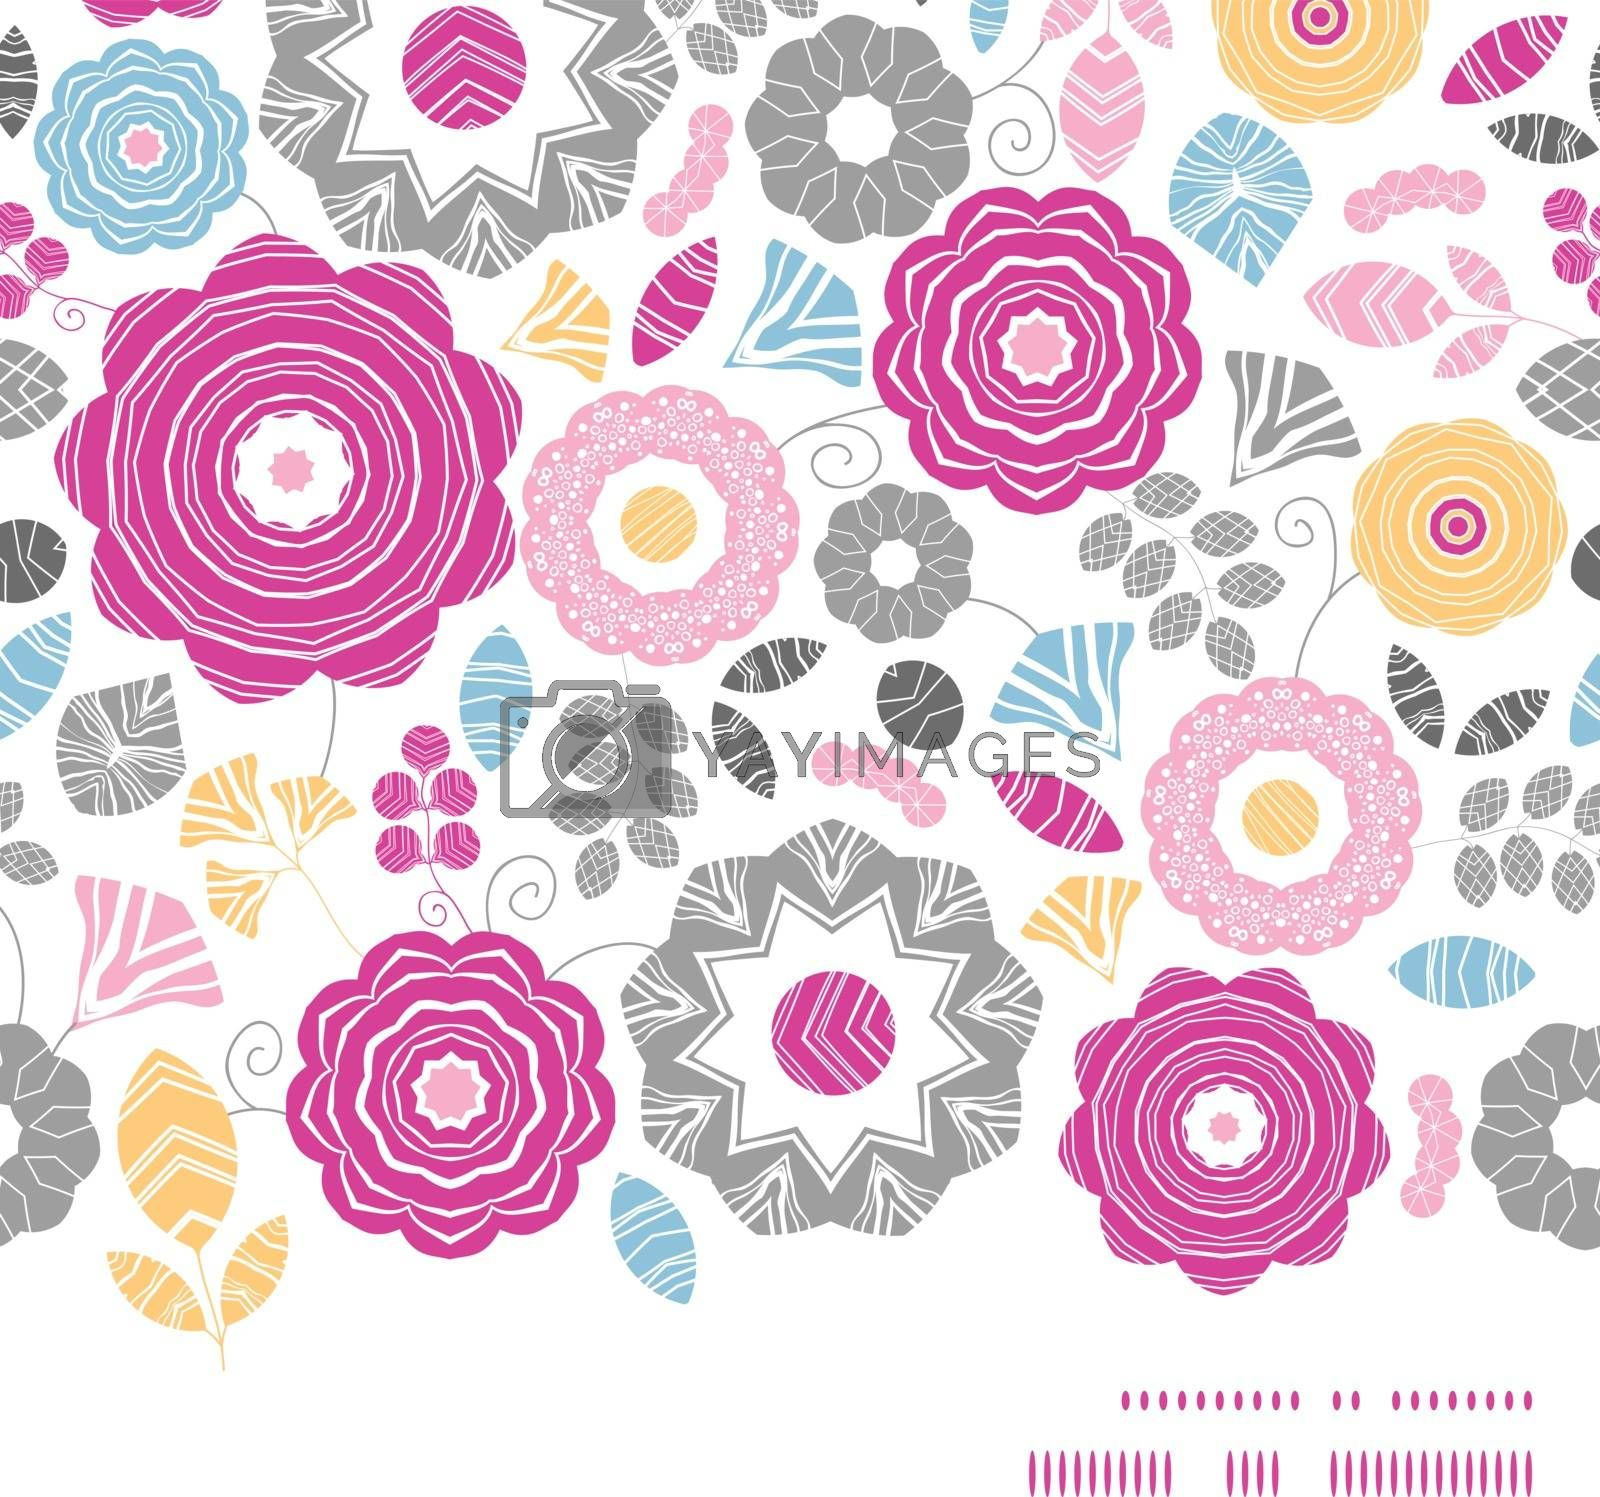 Vector vibrant floral scaterred horizontal frame seamless pattern background graphic design